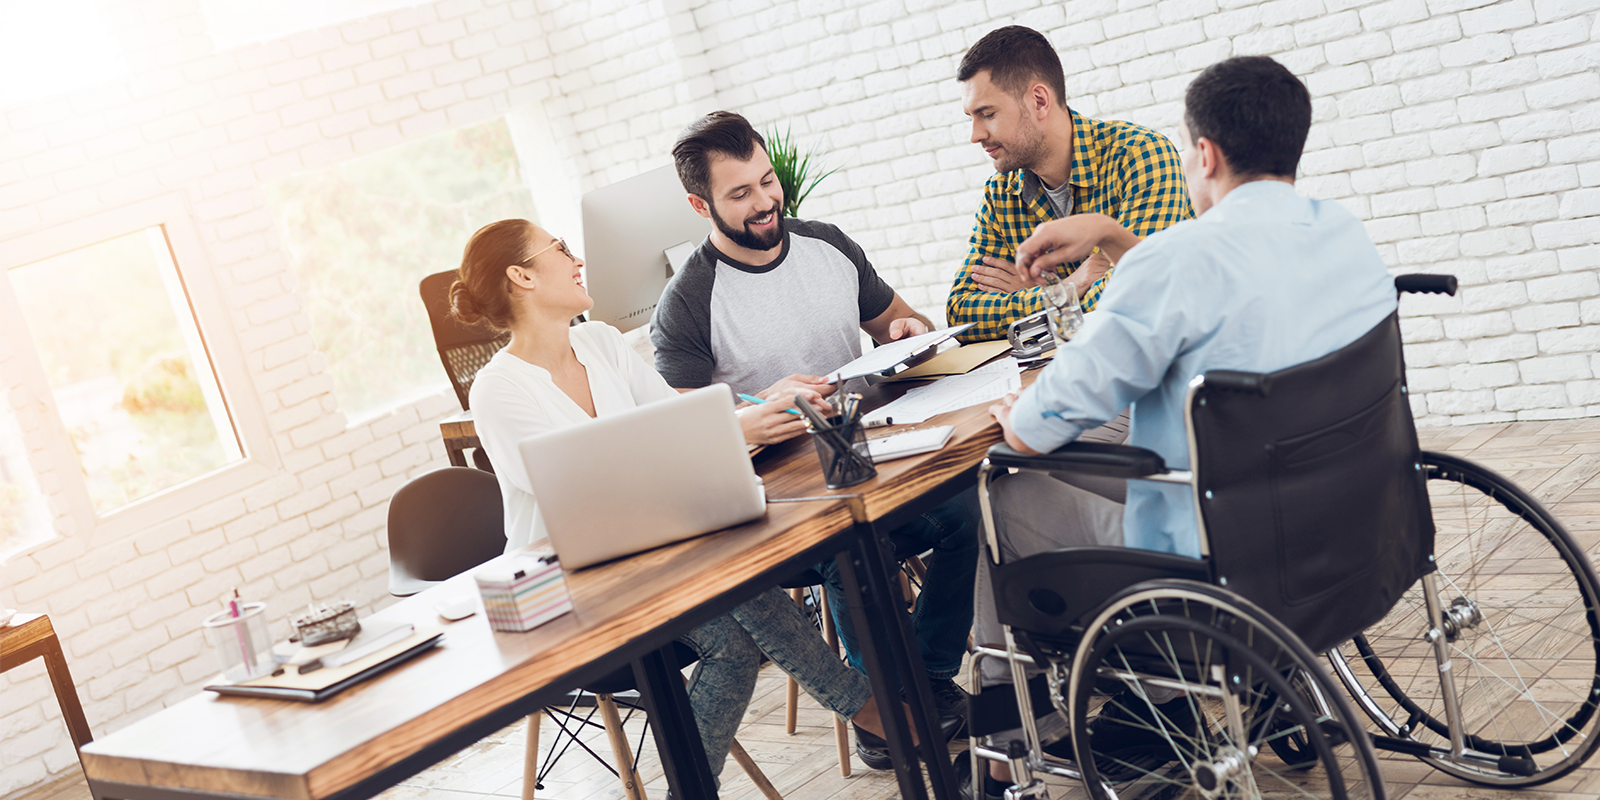 Four coworkers talk across a conference table, one of them is in a wheelchair